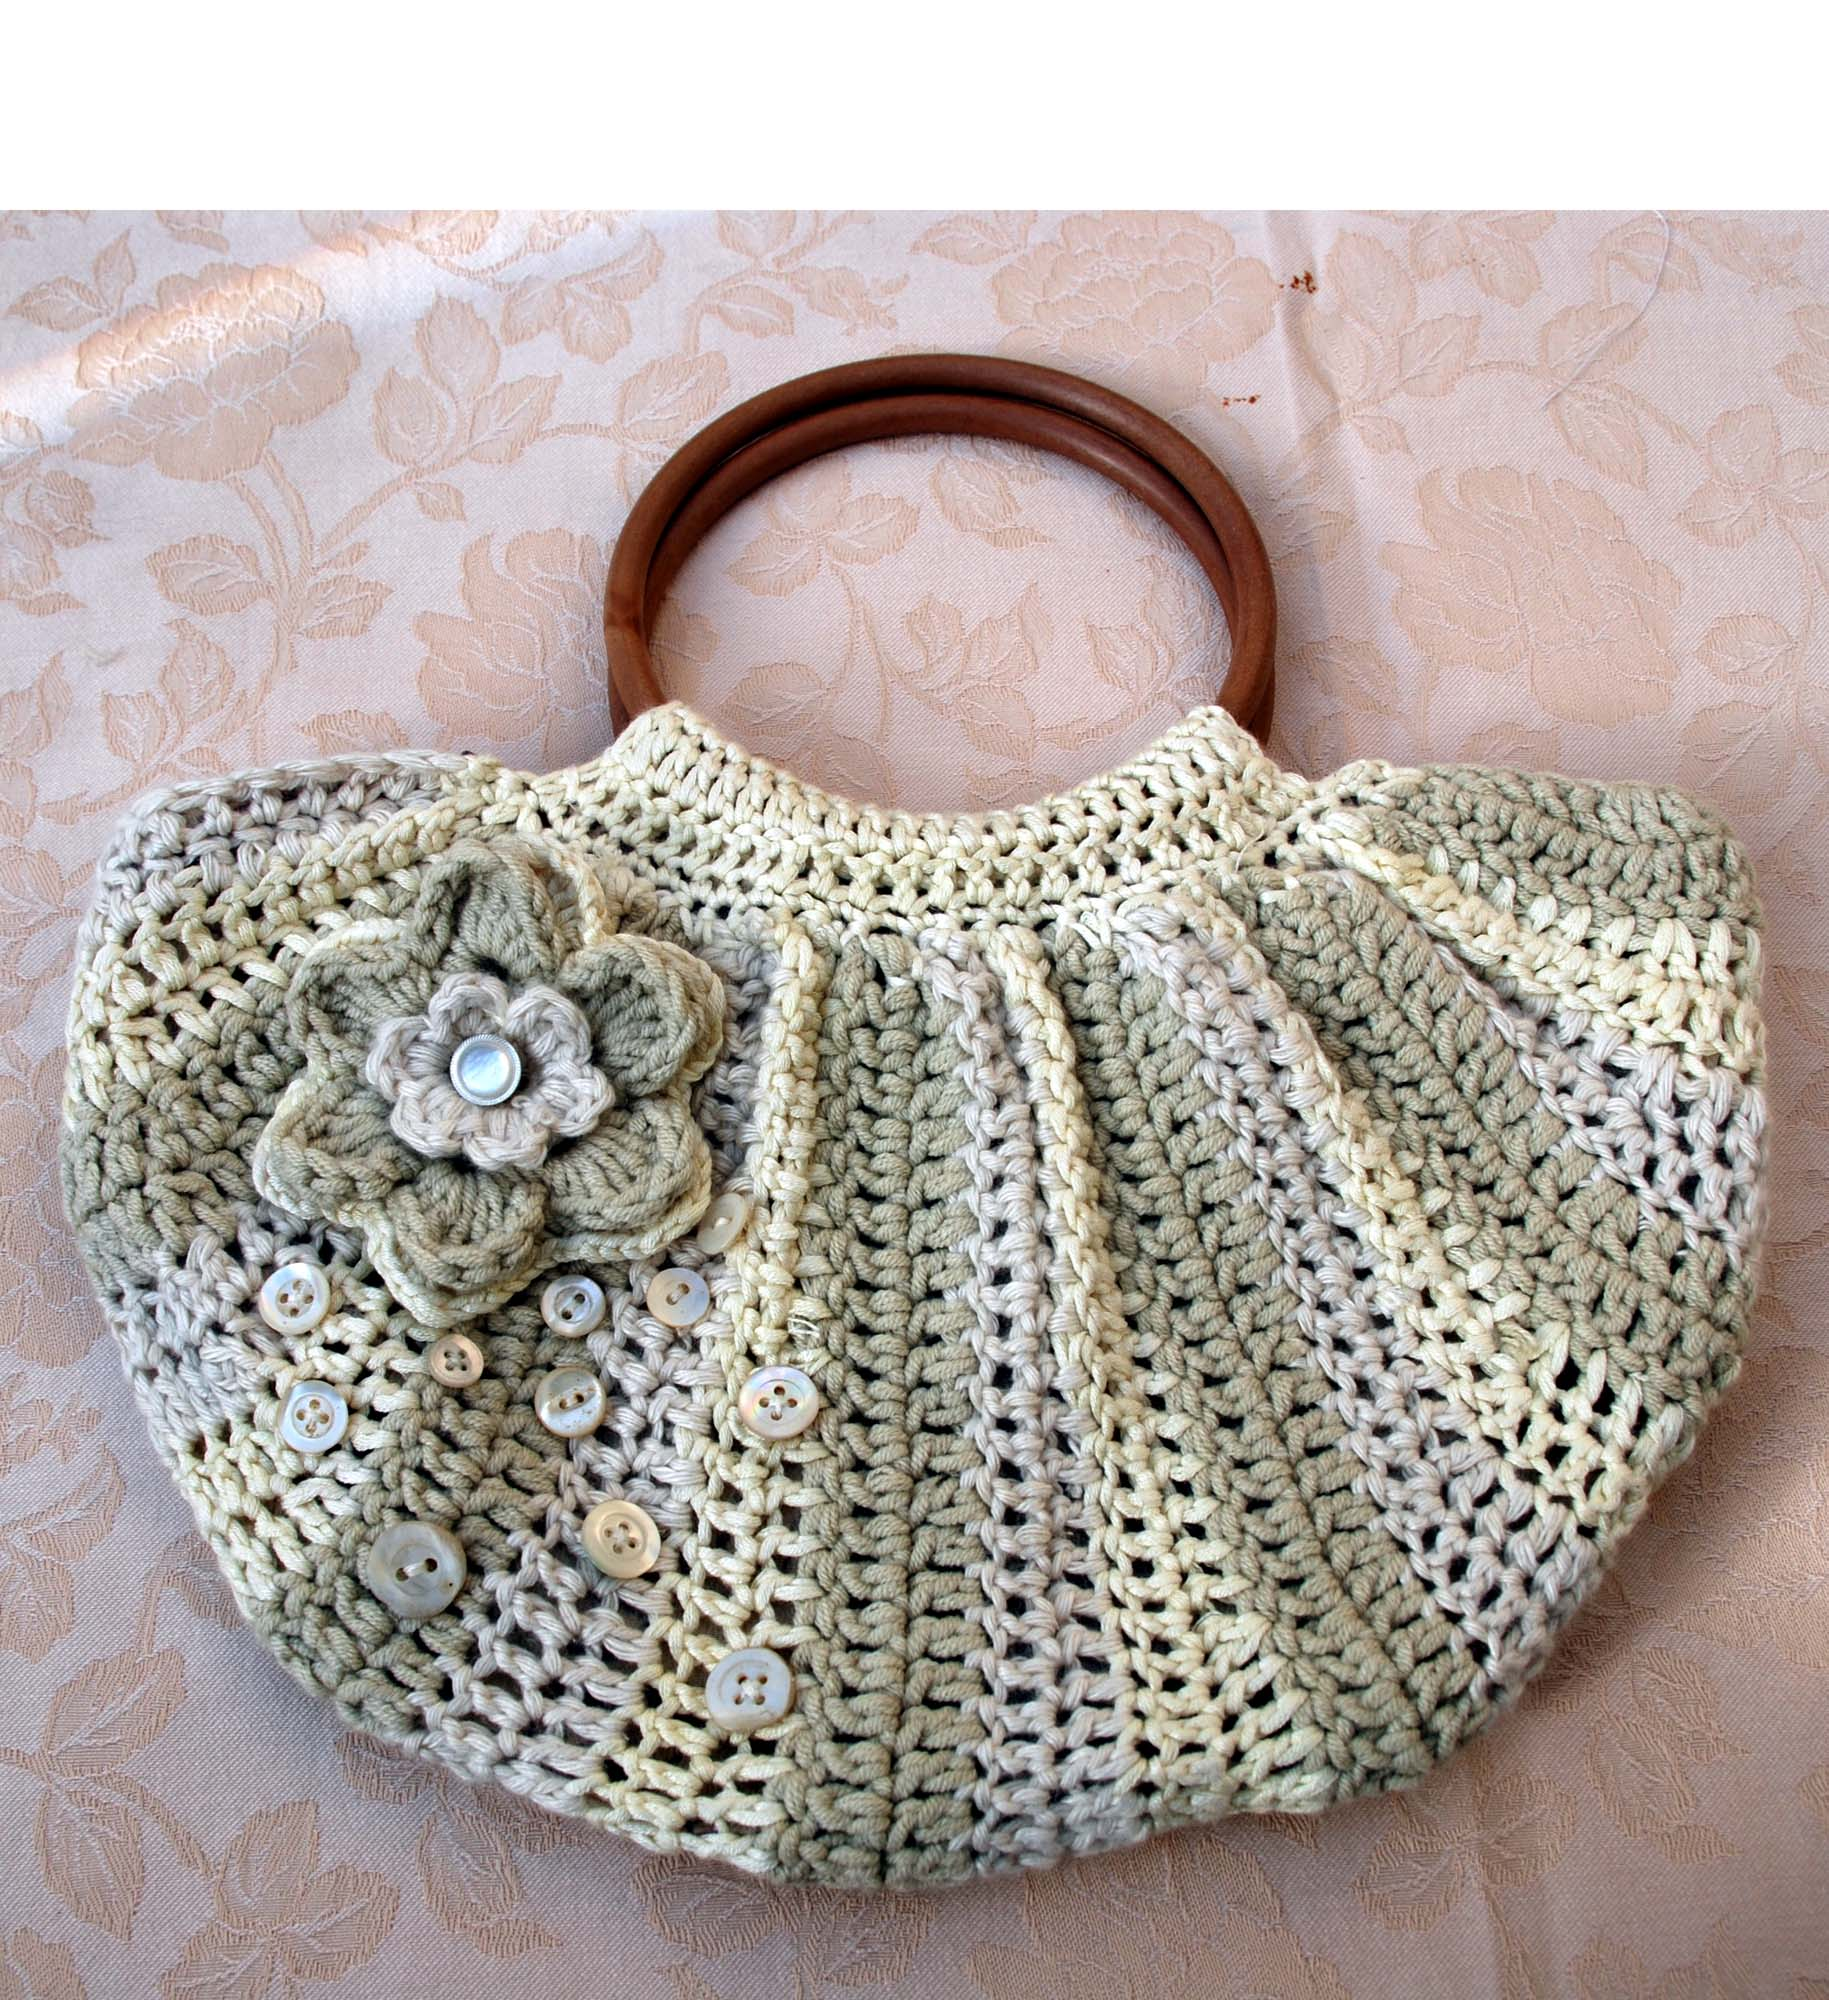 Crochet Bags Video : Pretty crochet bag with silk and pearl buttons